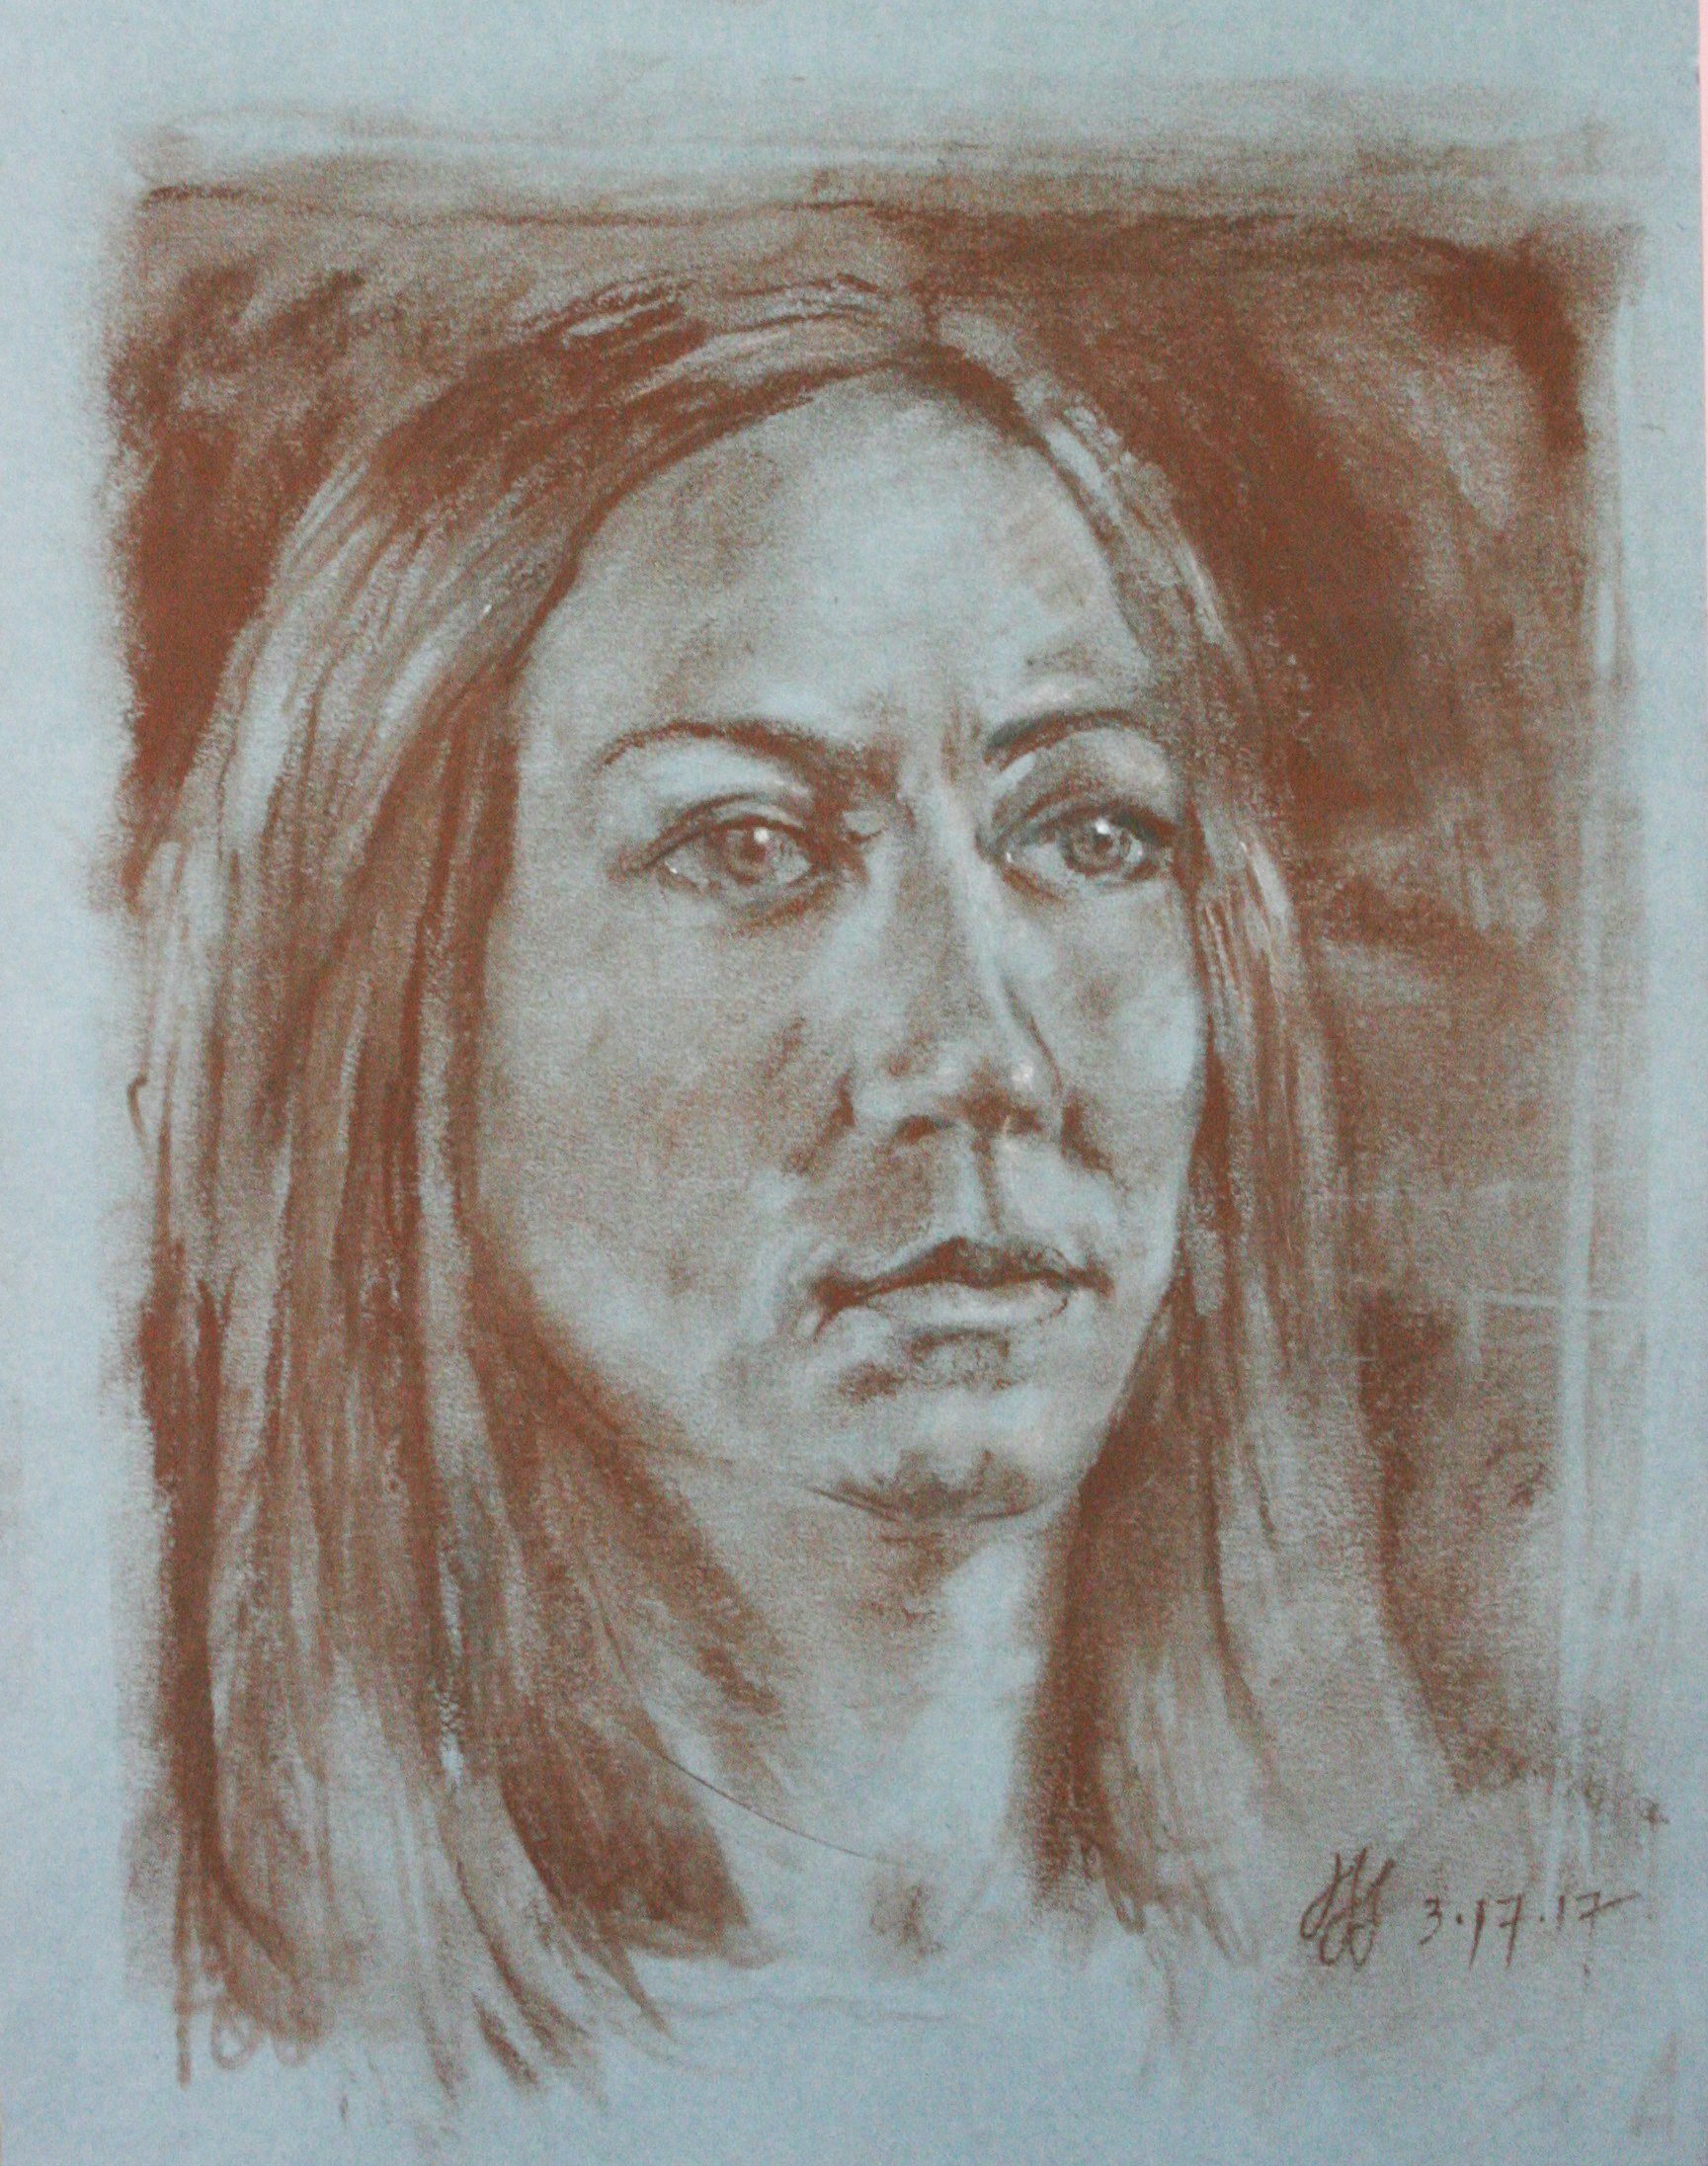 John Scavnicky did this 3-hour conte drawing of his niece.